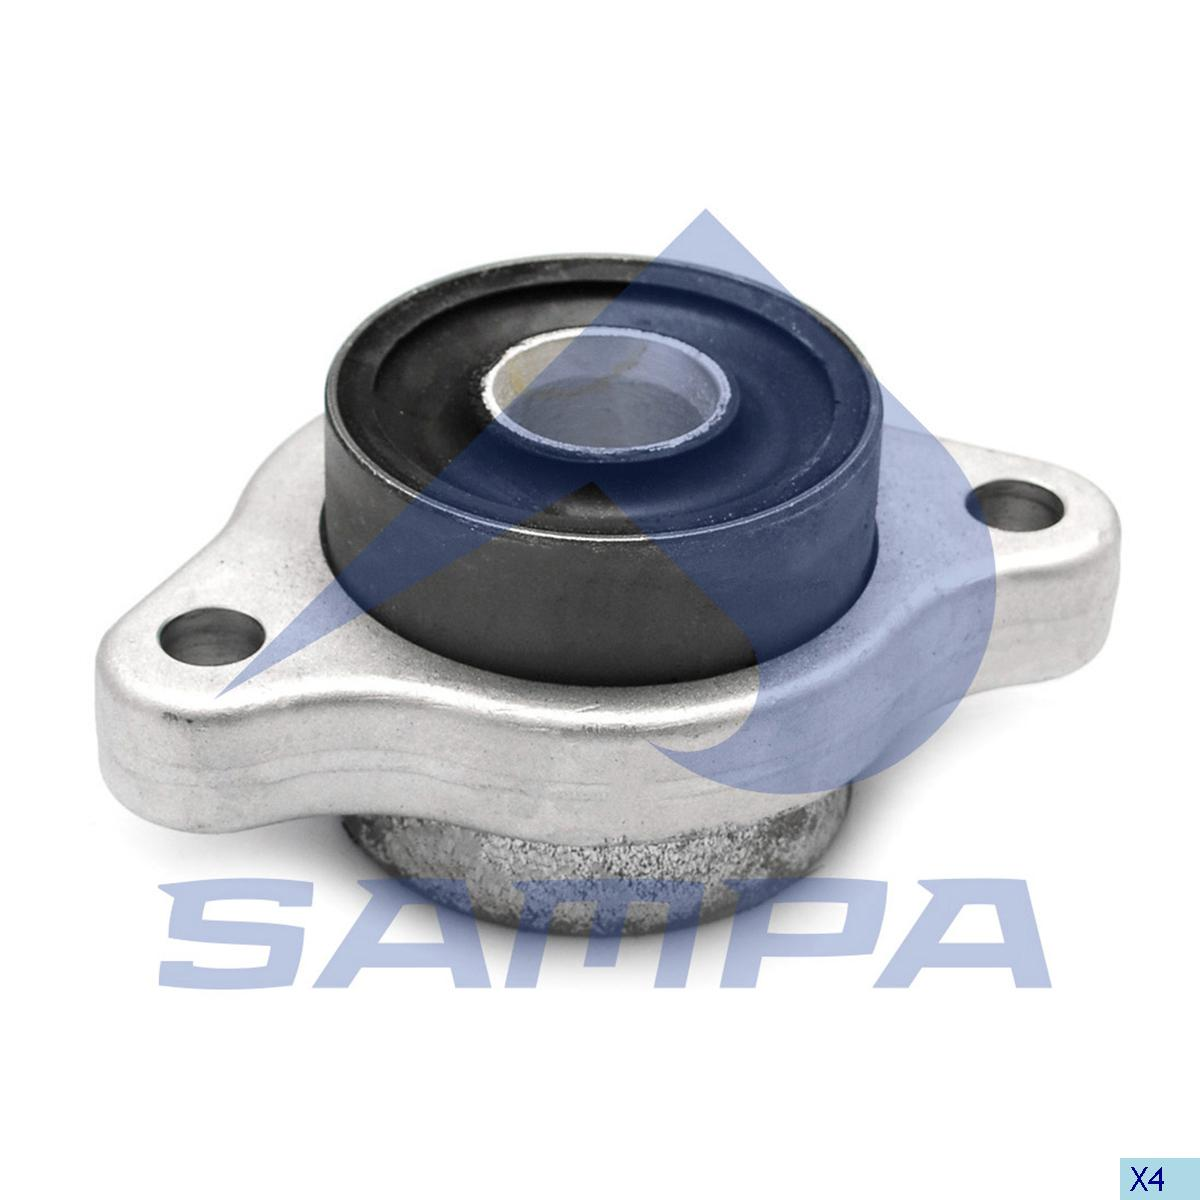 Rubber Bushing, Wishbone, Mercedes, Steering